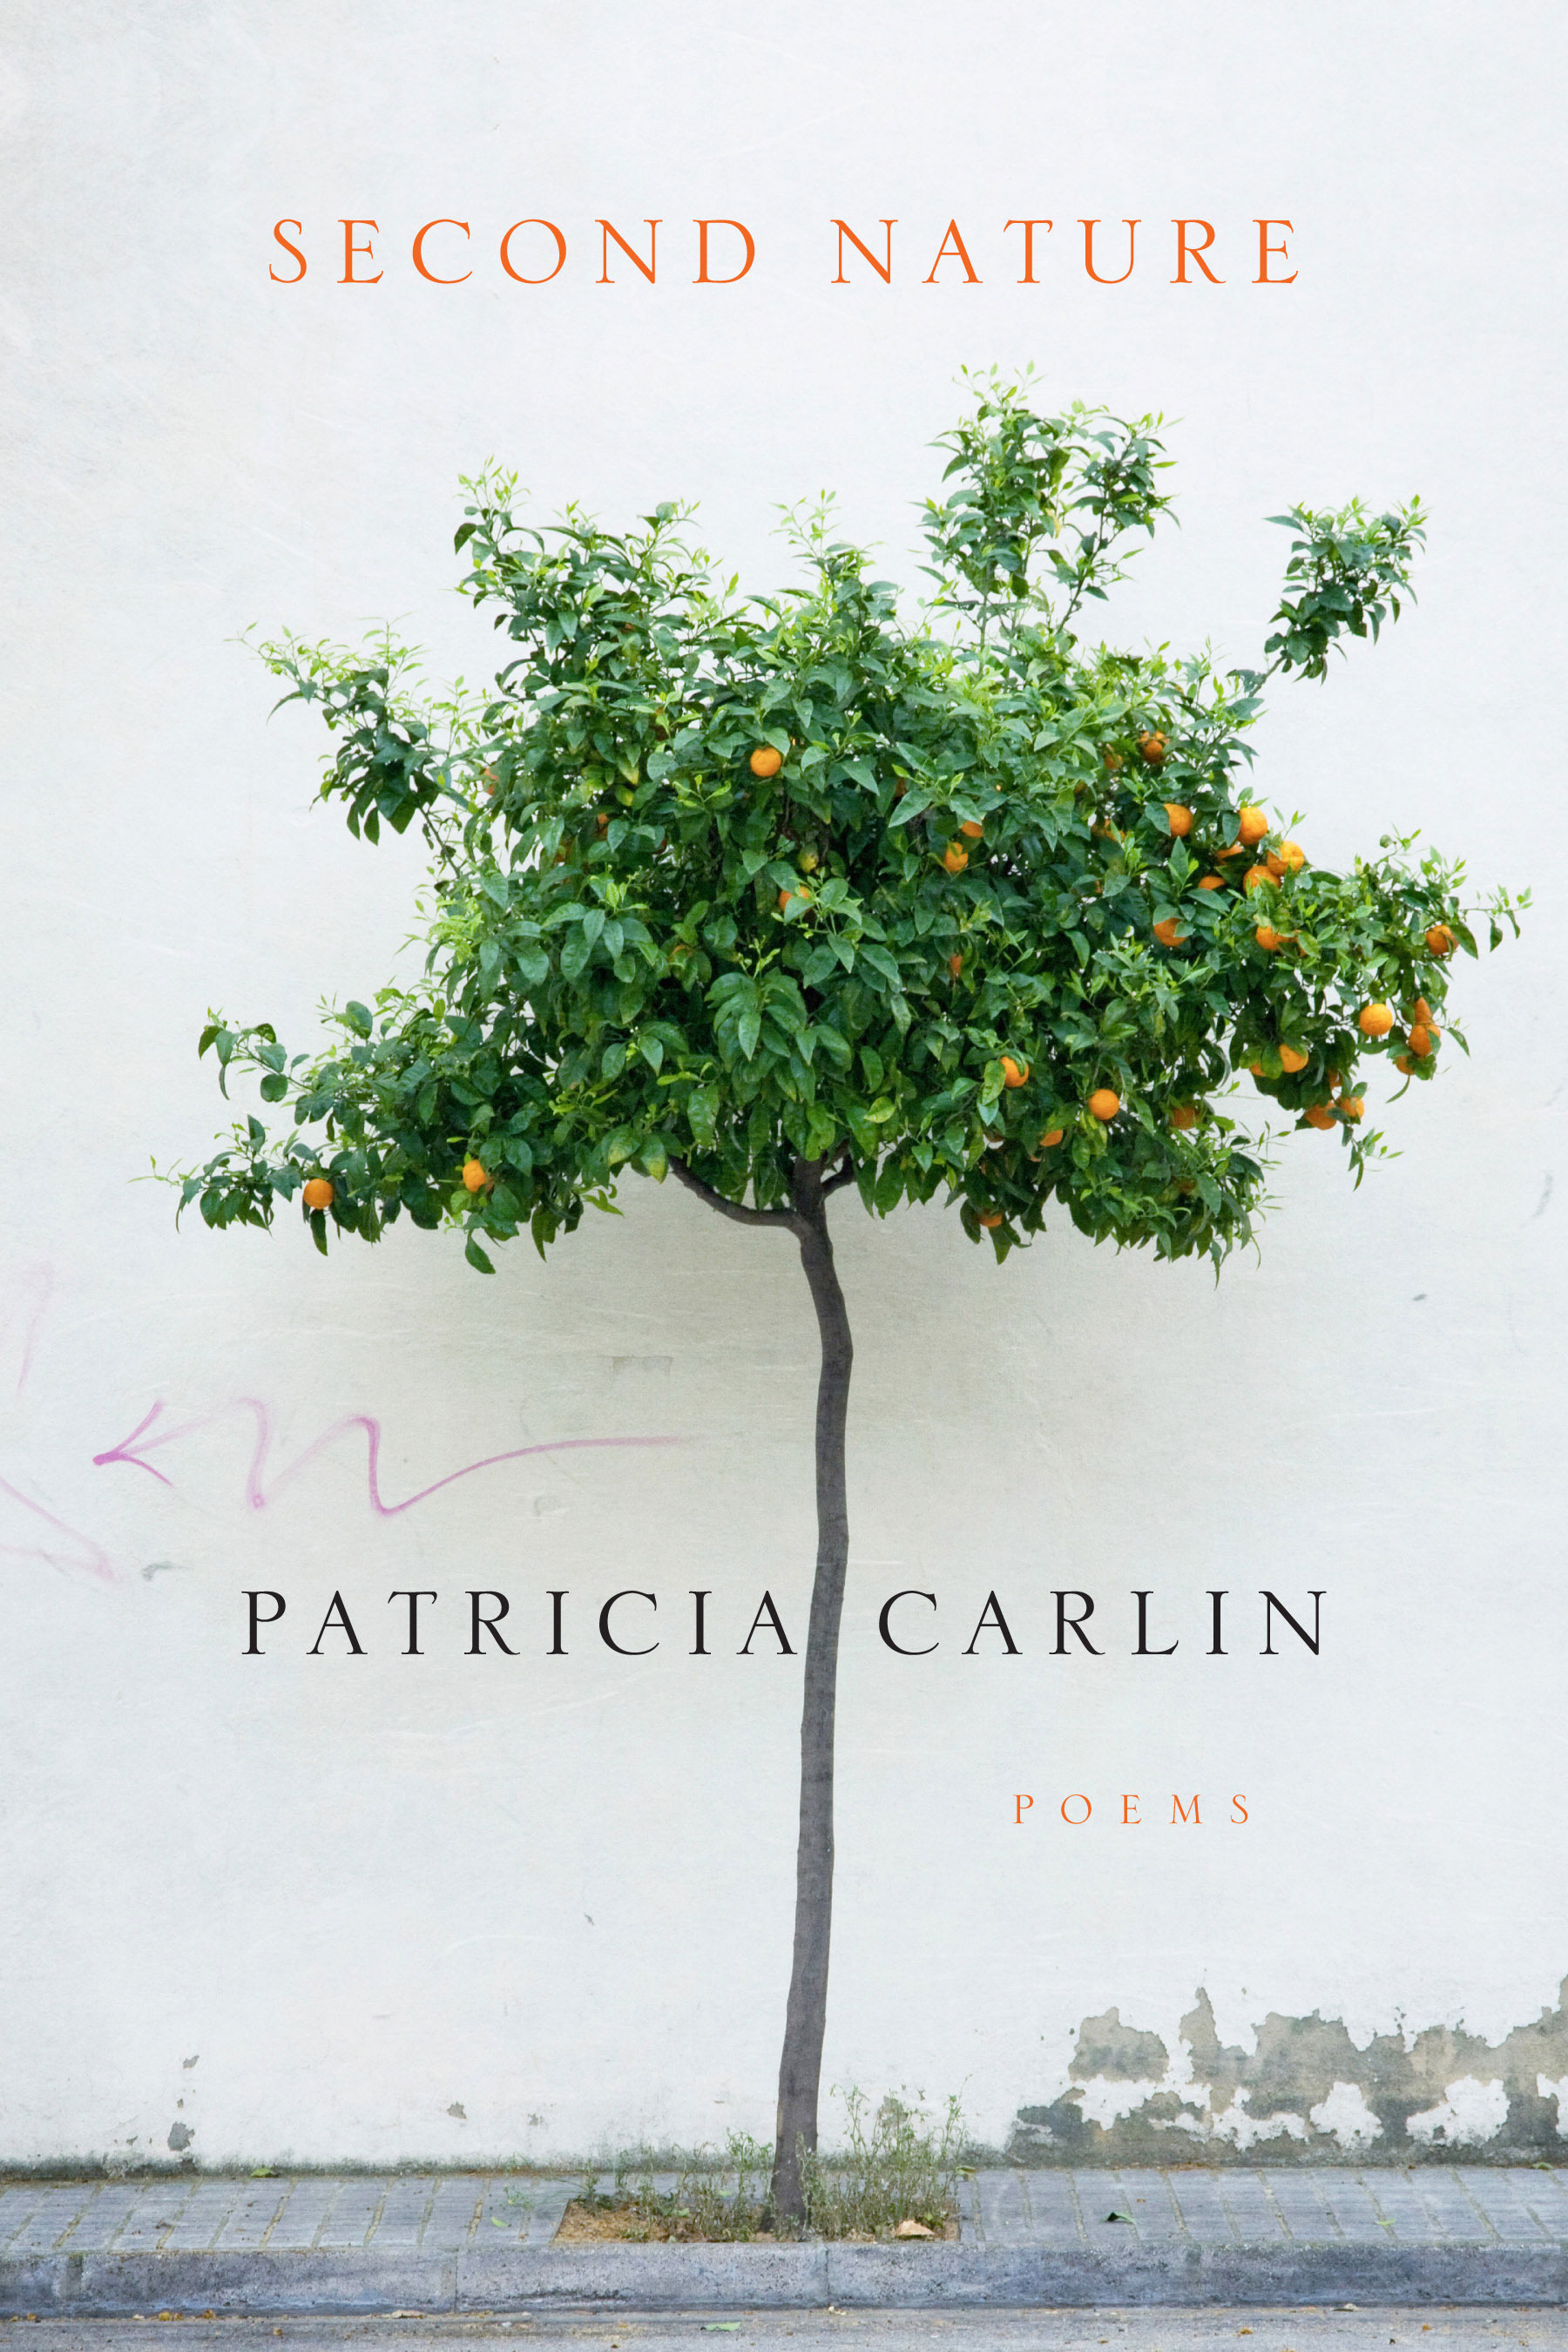 Second Nature by Patricia Carlin